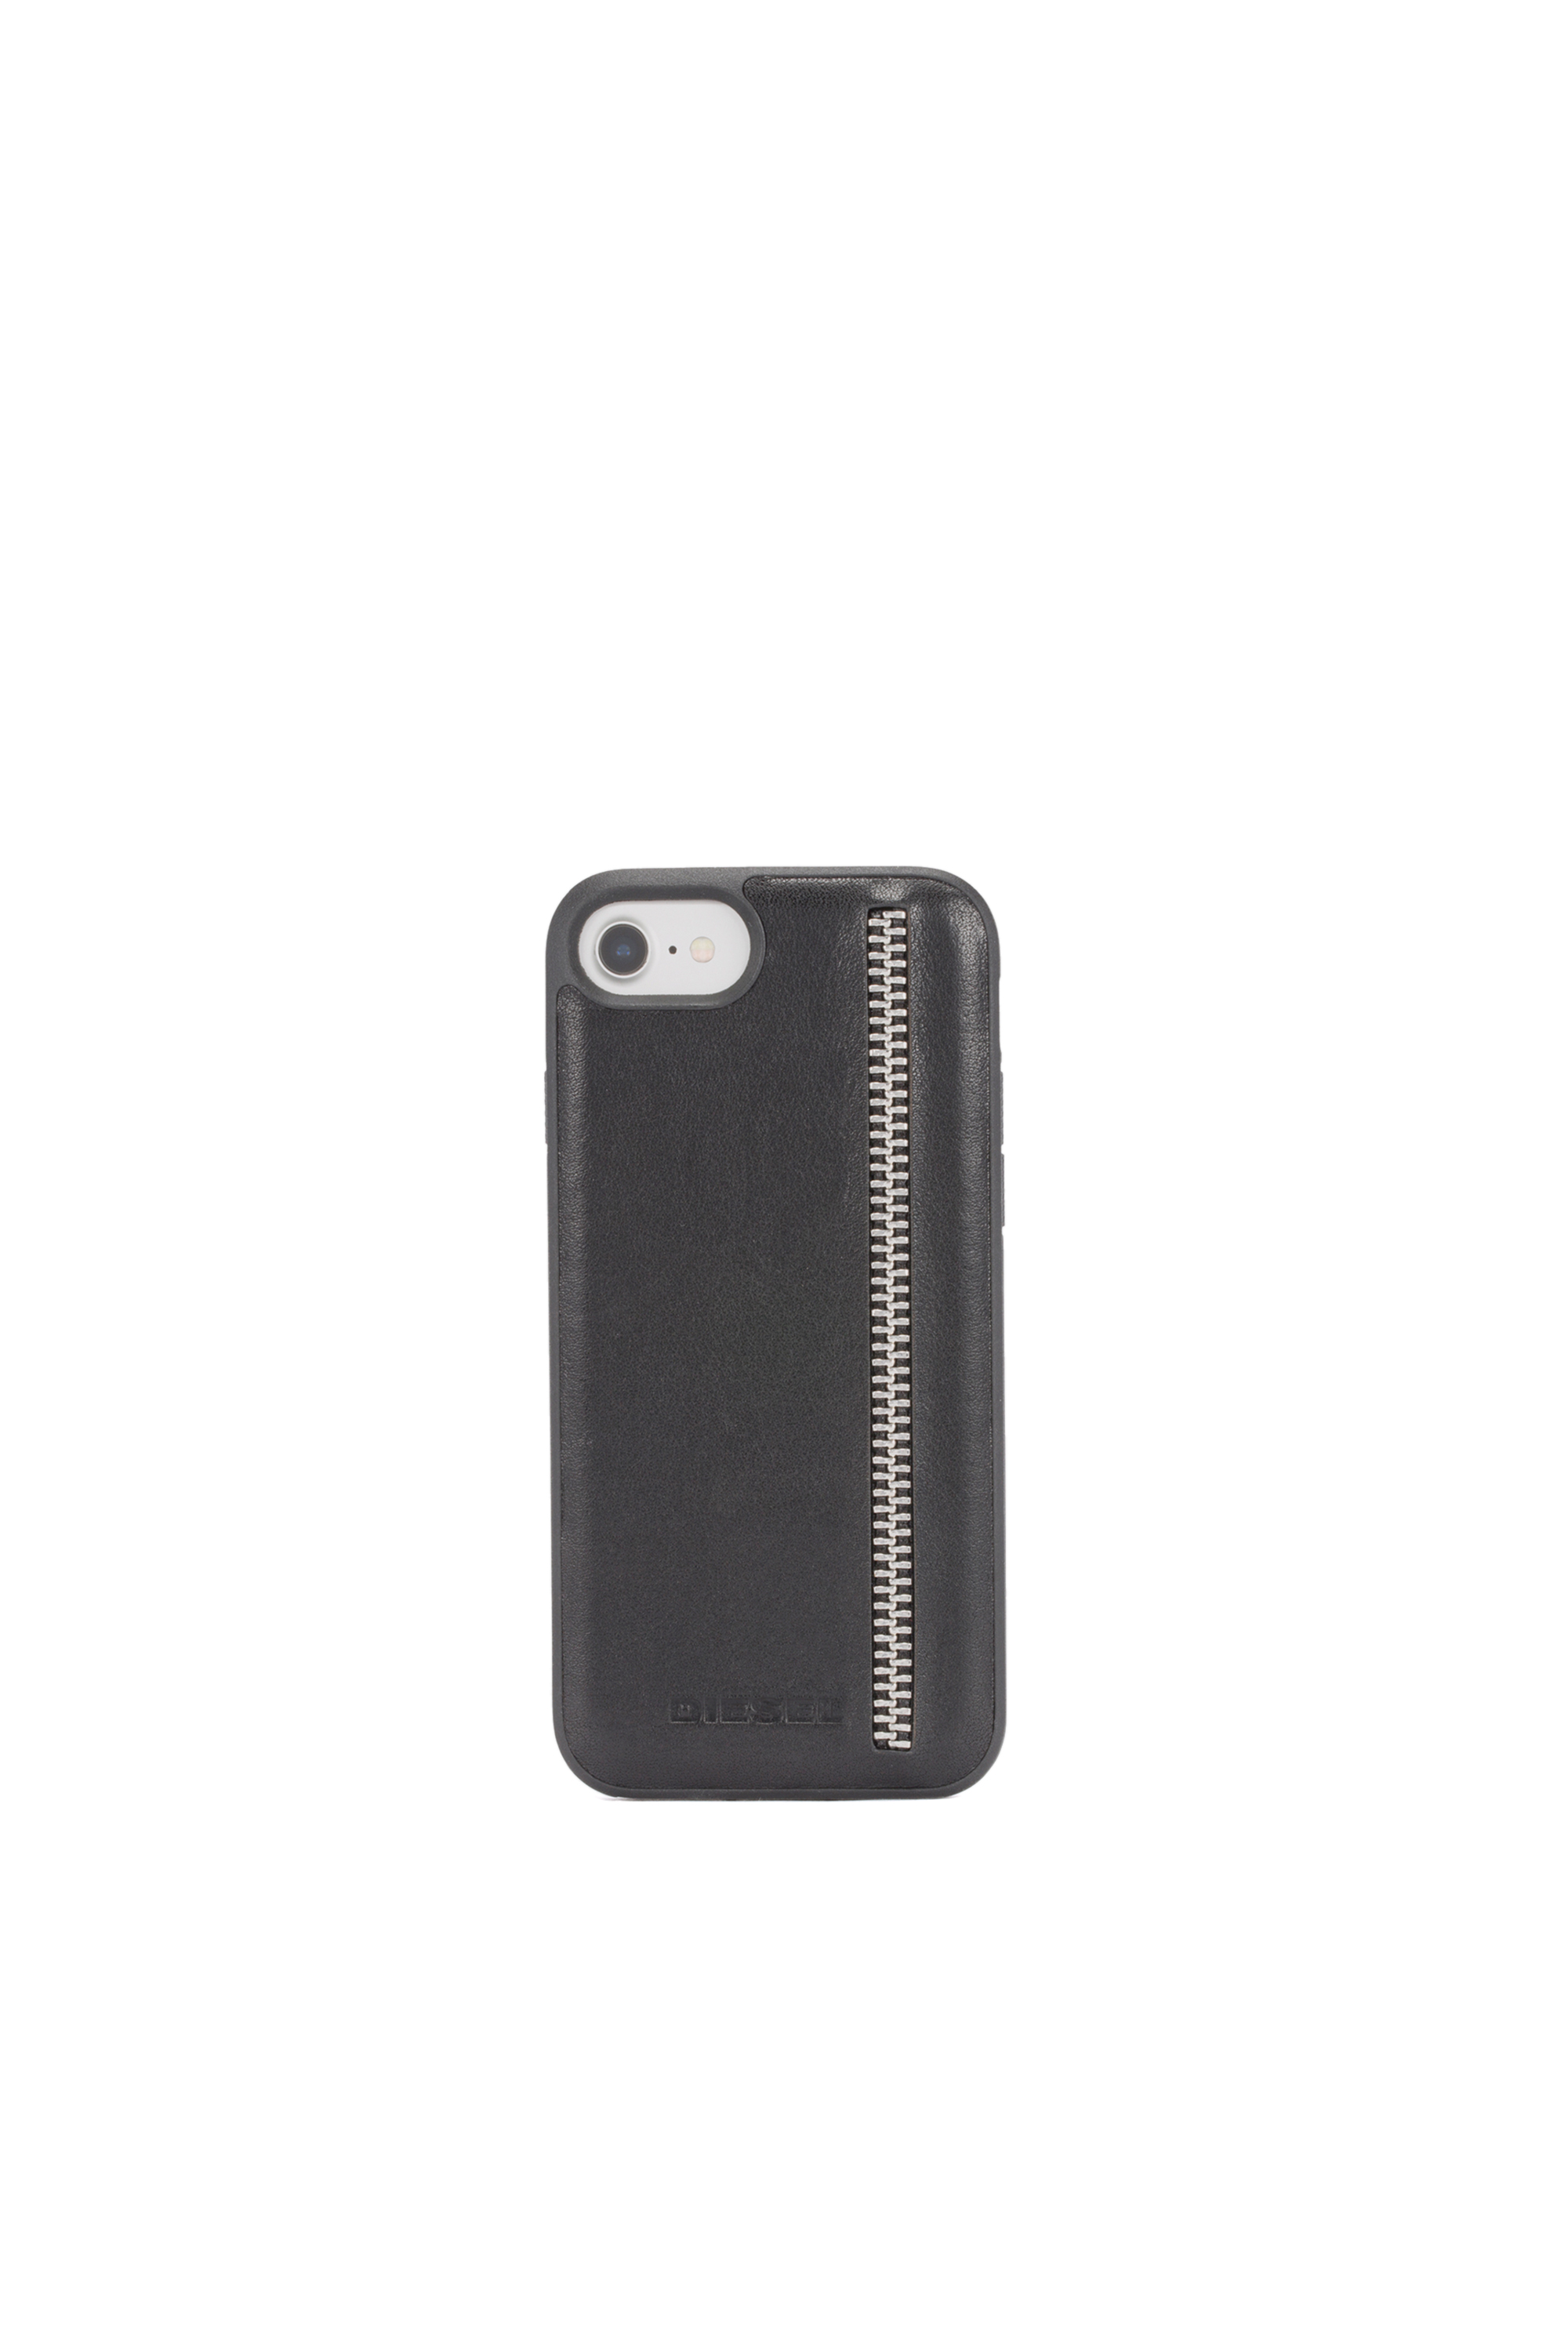 Diesel - ZIP BLACK LEATHER IPHONE 8/7/6s/6 CASE,  - Cases - Image 4